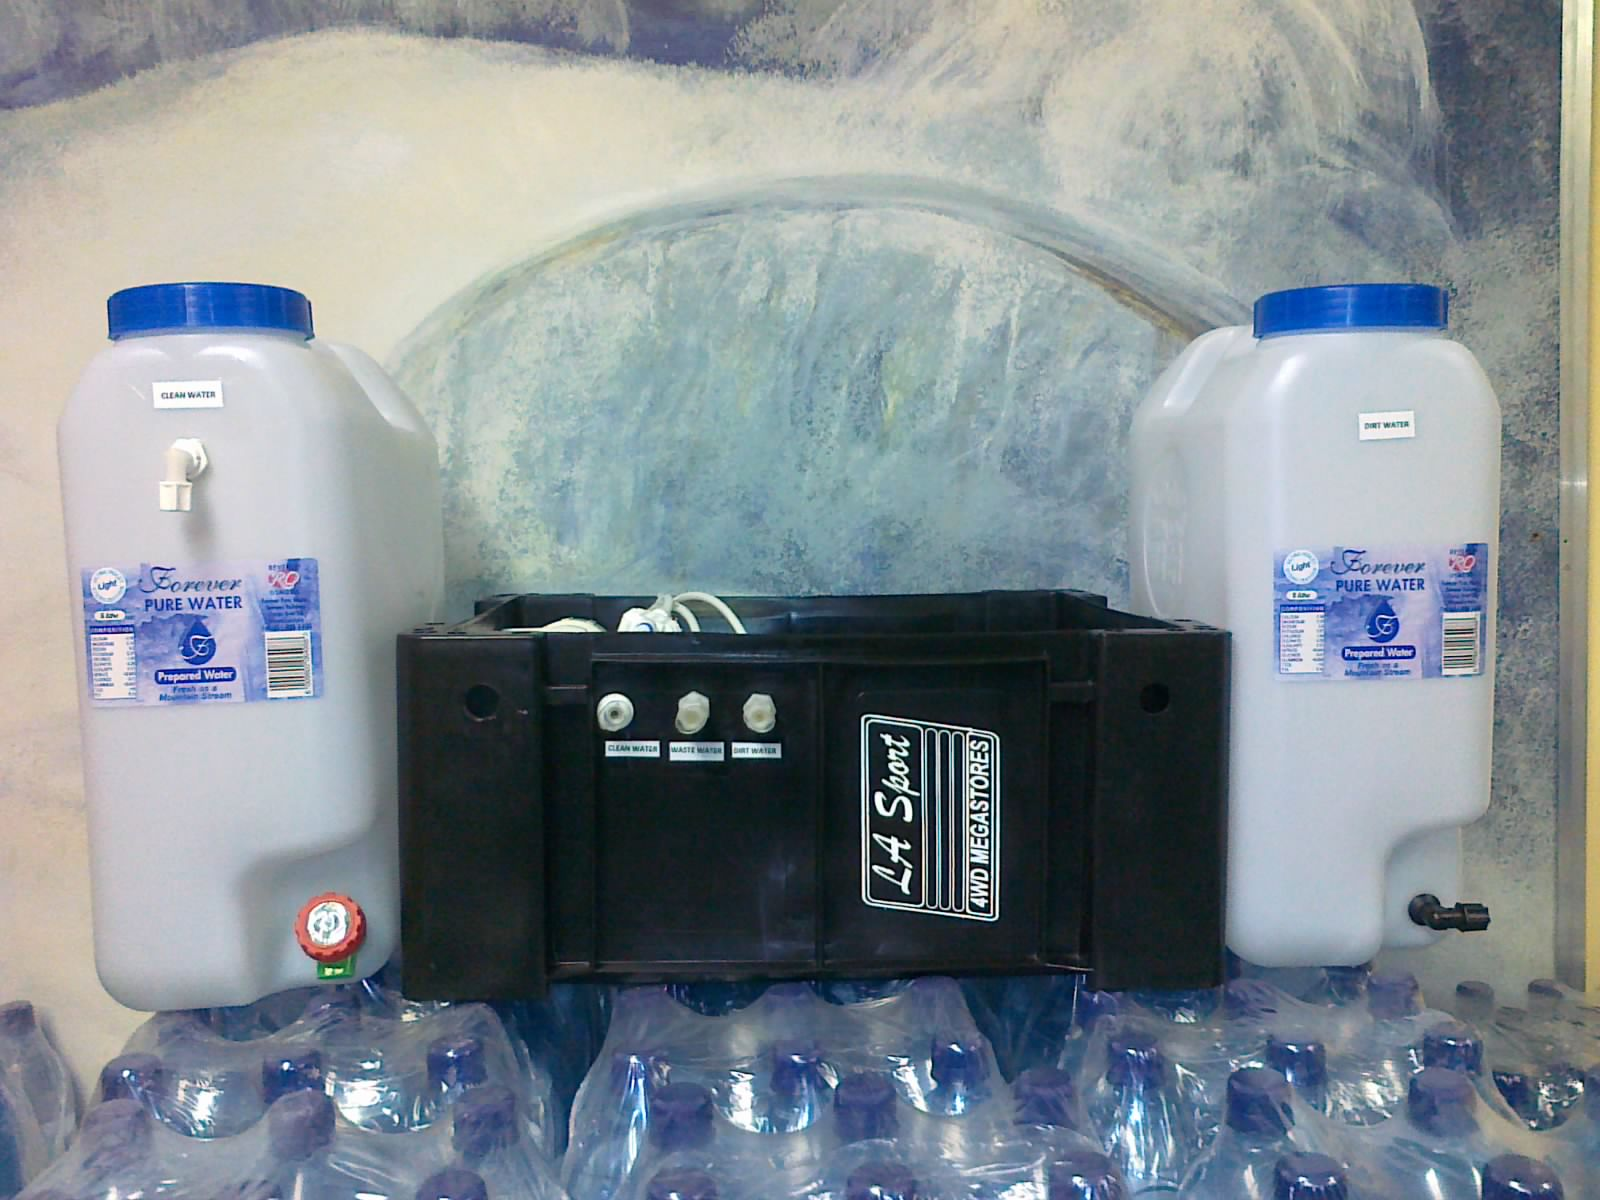 Reverse Osmosis Purification Systems Forever Pure Water